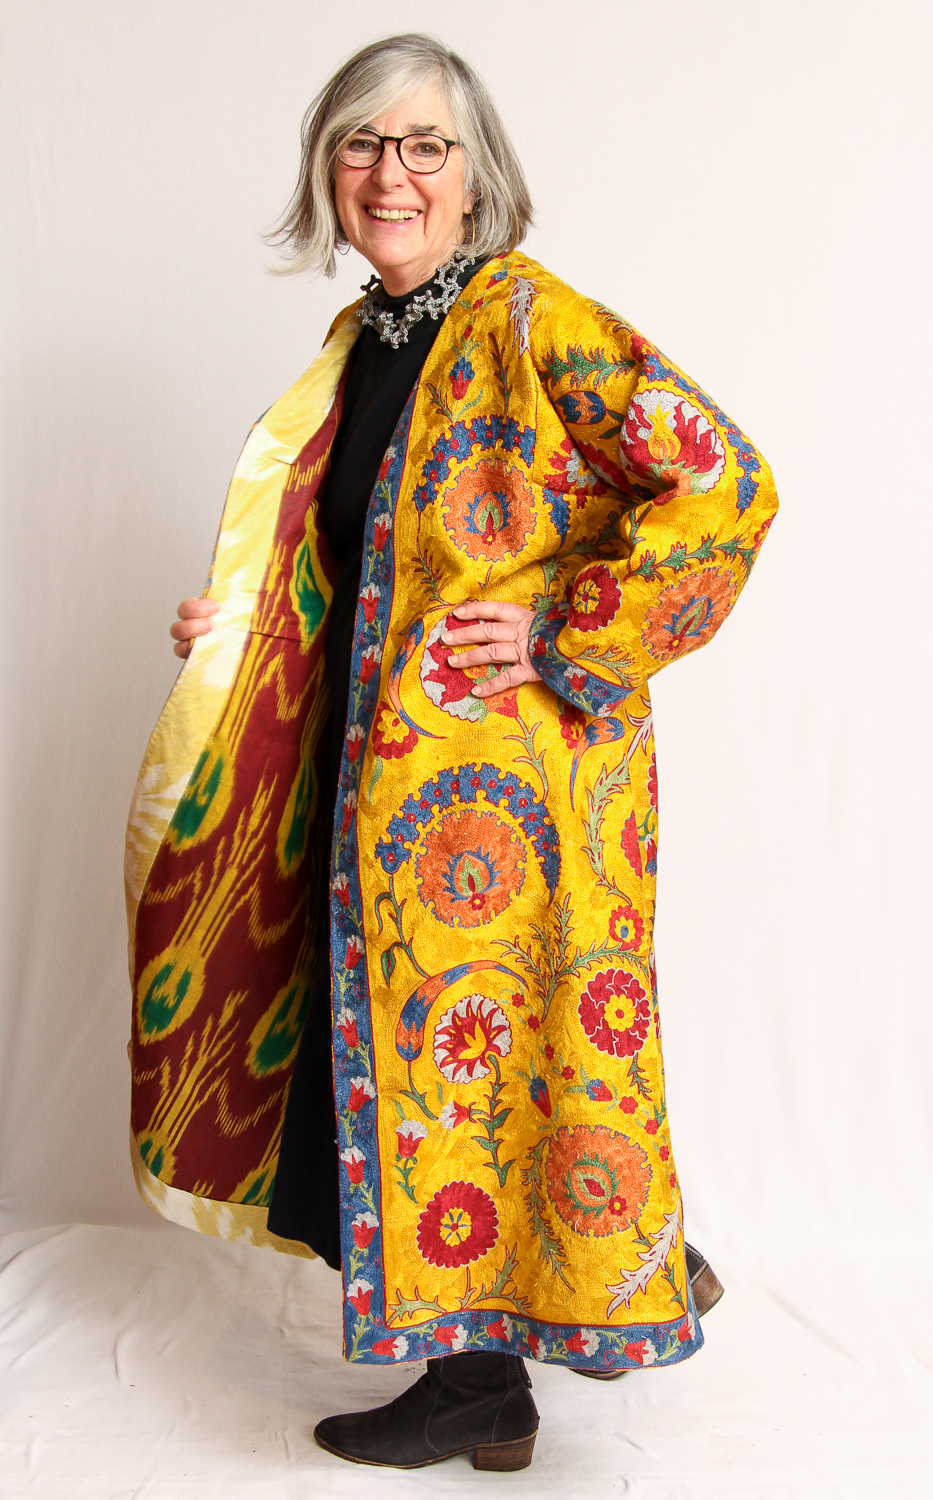 "Judith Bird - ""I fell in love with this coat when I met the man who made it in Uzbekistan. I just said, 'This is the most beautiful thing I've ever seen in my whole life.' And it's way over my pay grade to have bought it, but it didn't matter. It was just so beautiful, I couldn't not have it—which is an odd way to live. But, we all have times when things are that special. I don't take it to the grocery store.As for my personal style, I dress every day. I take care of what I put on. I think about where I'm going, what I'm doing, what looks good with what—and it's just a playground. My wardrobe is a playground. It seems like I can do something fun almost every day."""